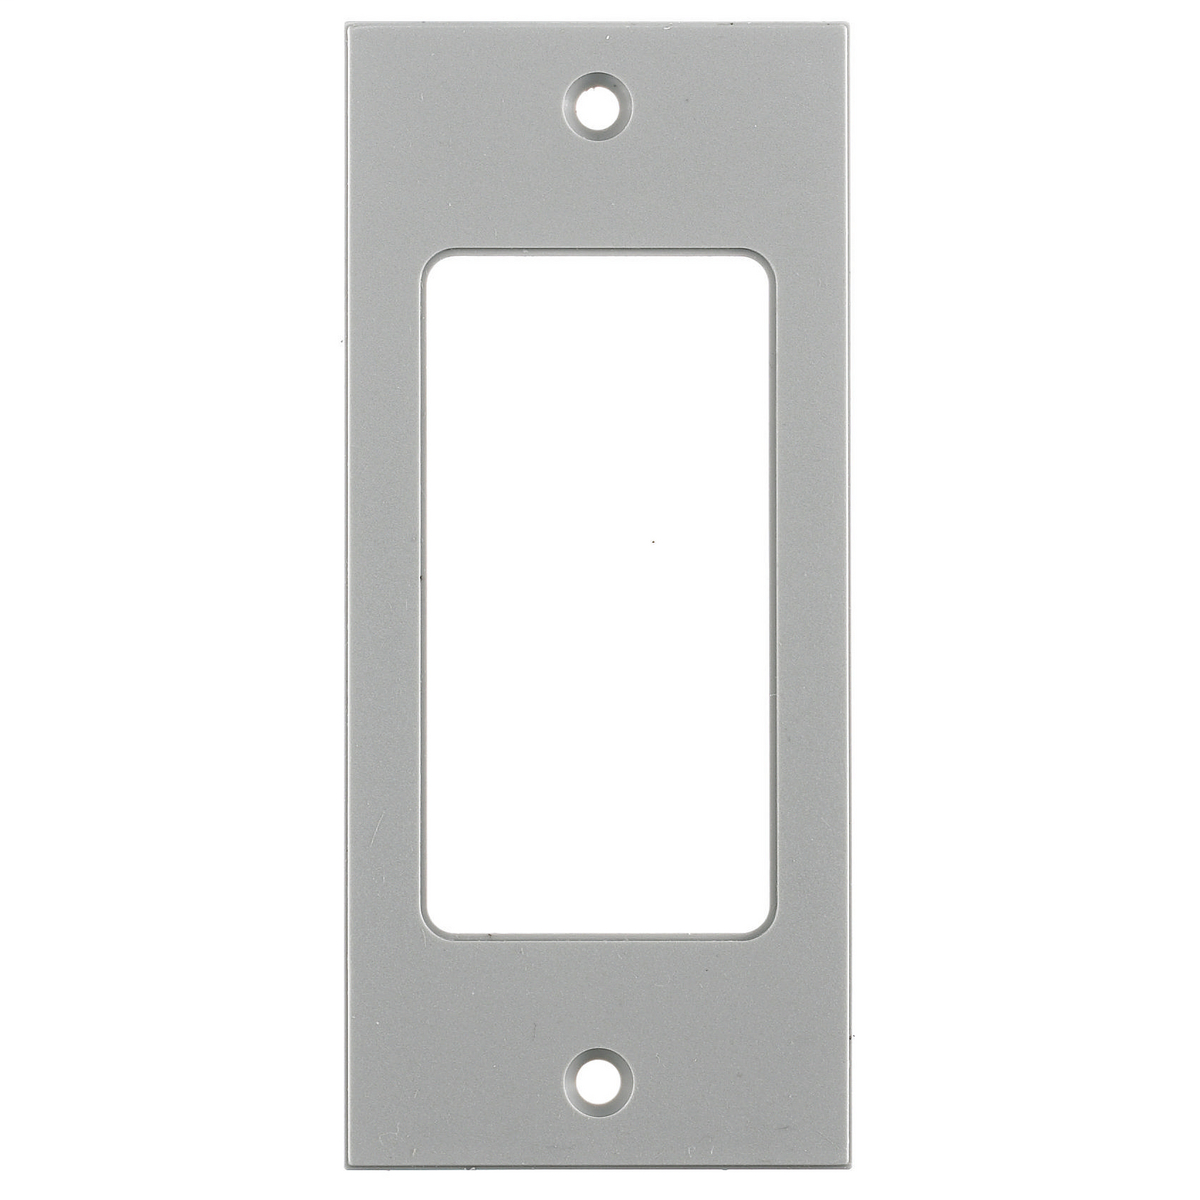 Hubbell Wiring Device Kellems, Floor and Wall Boxes, MULTI-CONNECTSystem, Face Plate, Screw Mount, GFCI, Gray